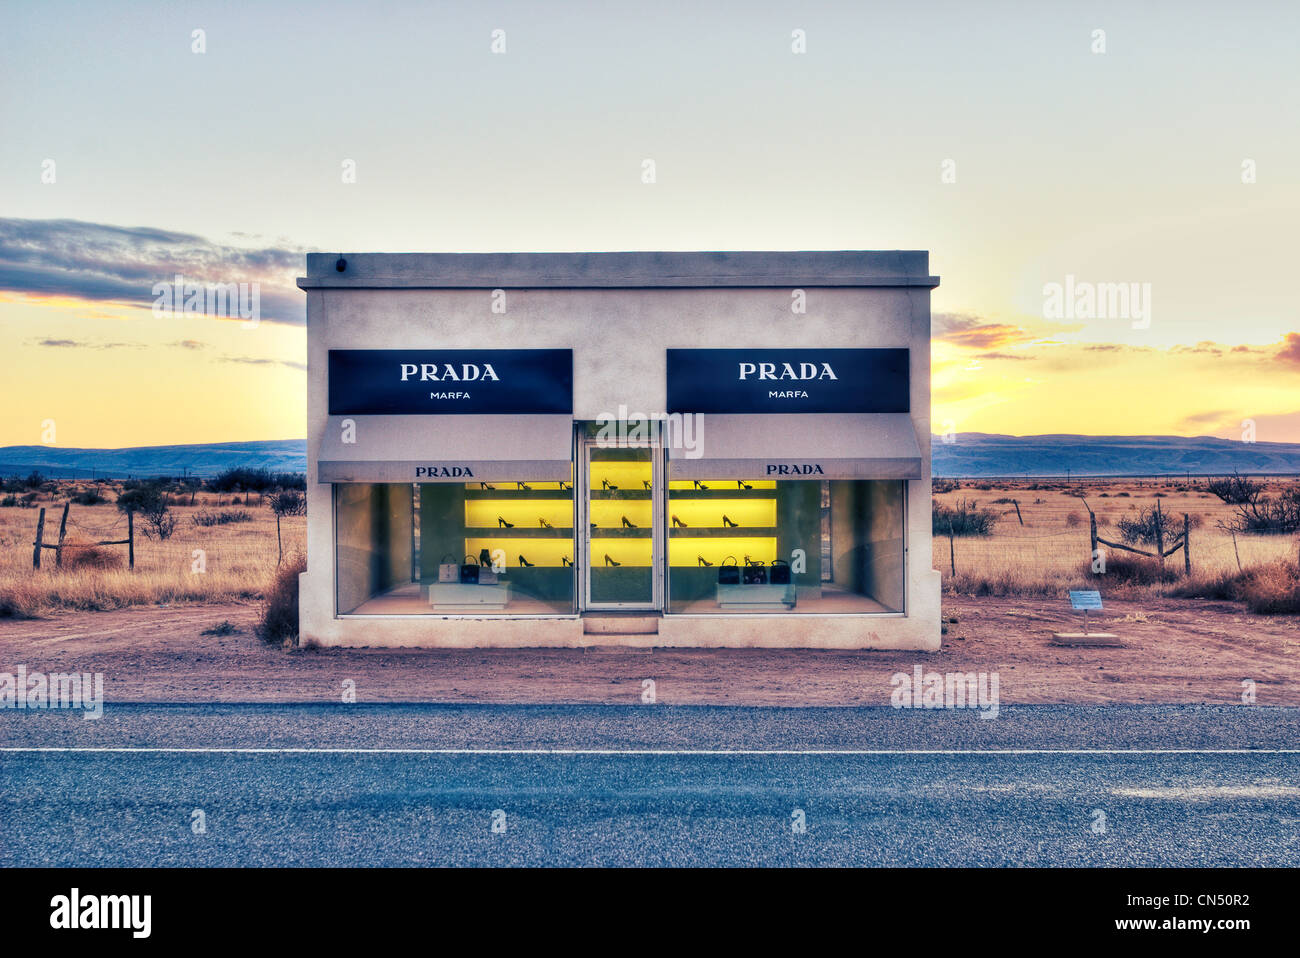 Prada Marfa Valentine TX Stock Photo Royalty Free Image